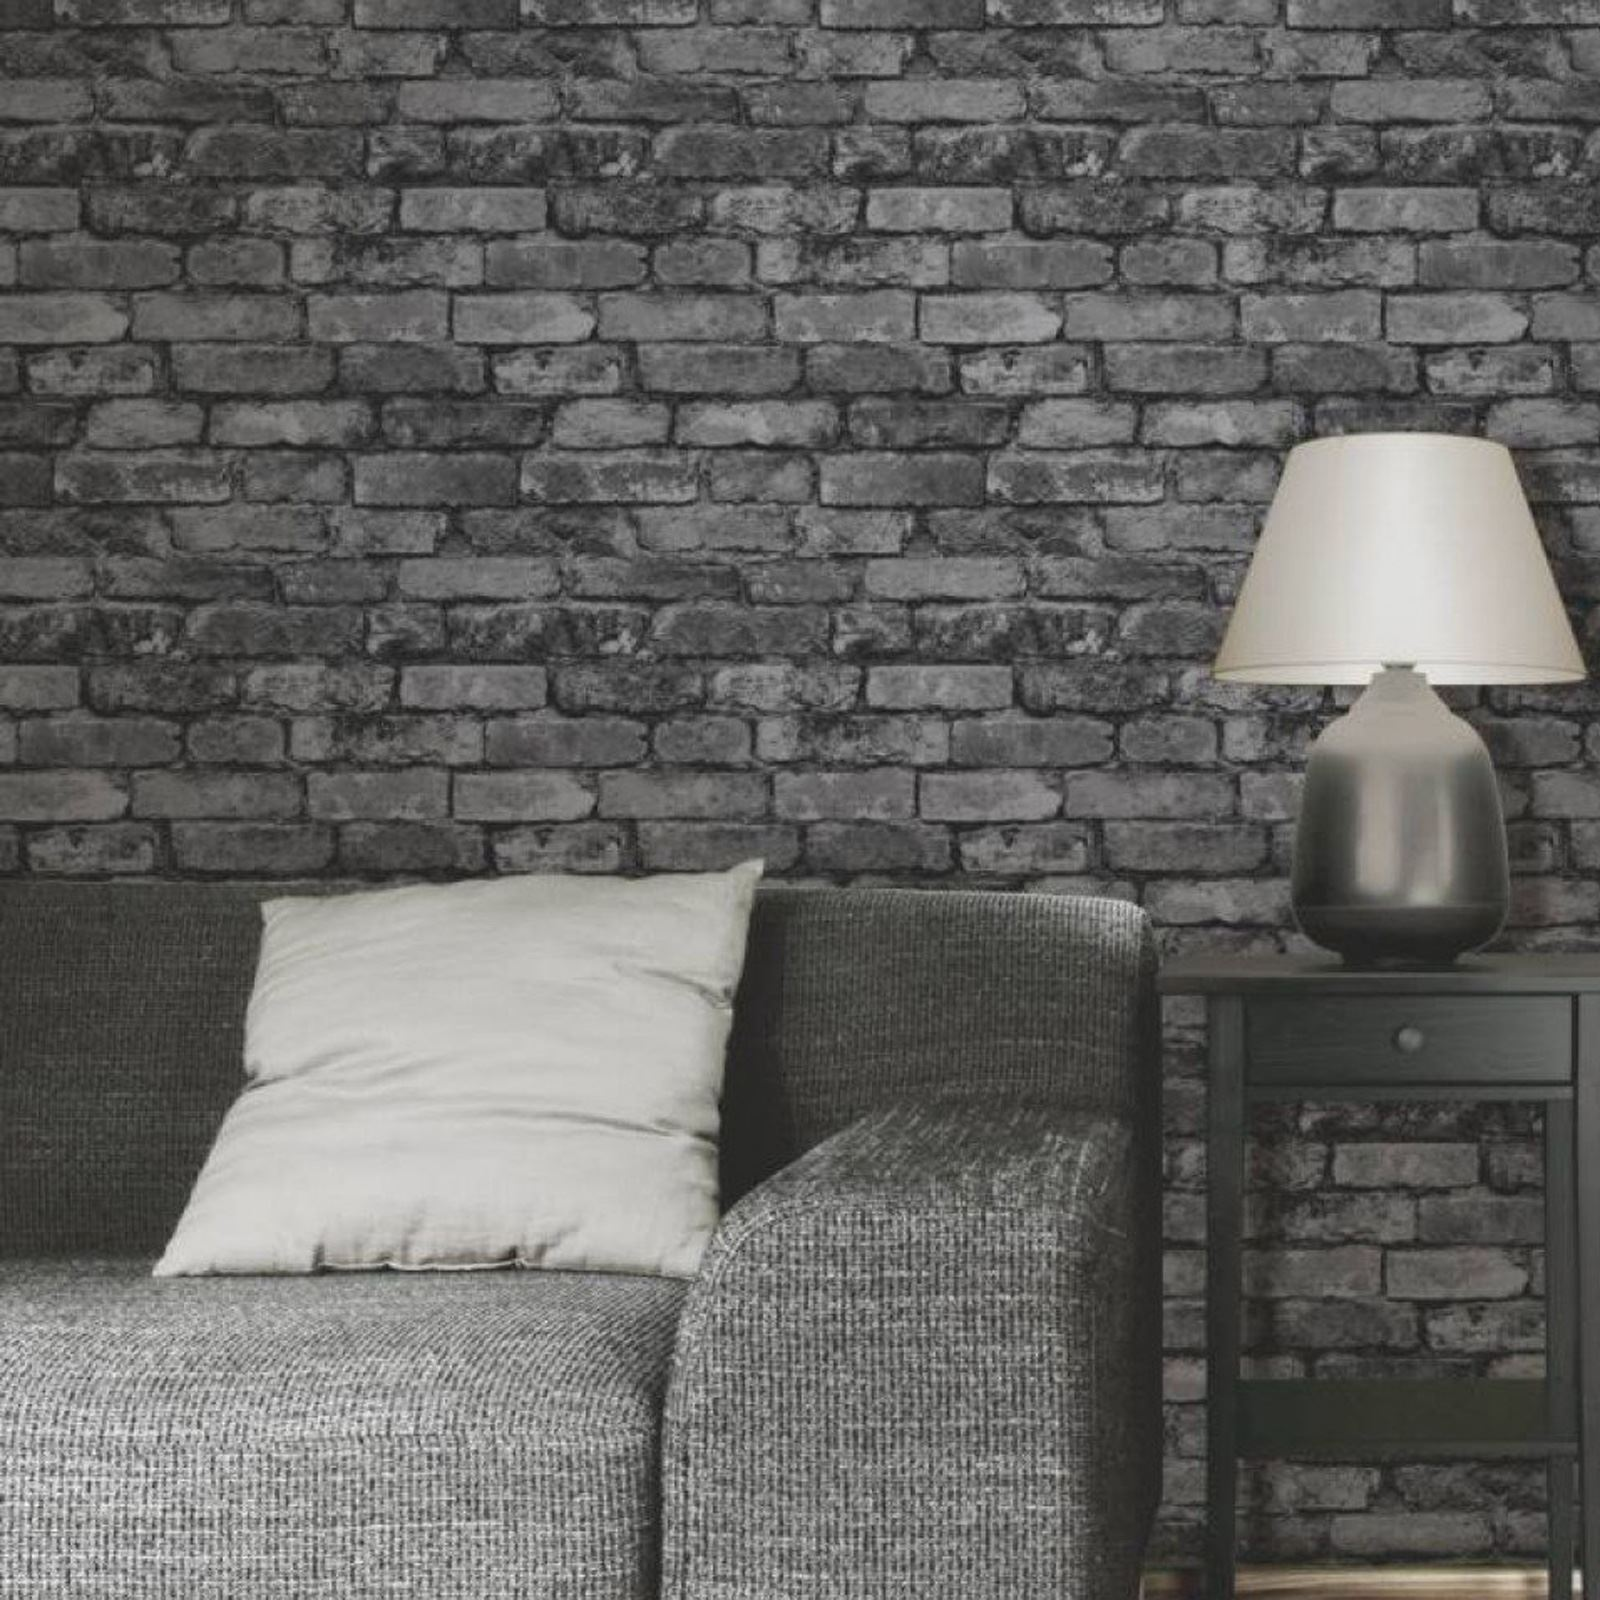 Rustic brick effect wallpaper 10m charcoal silver grey by for Brick wallpaper bedroom ideas